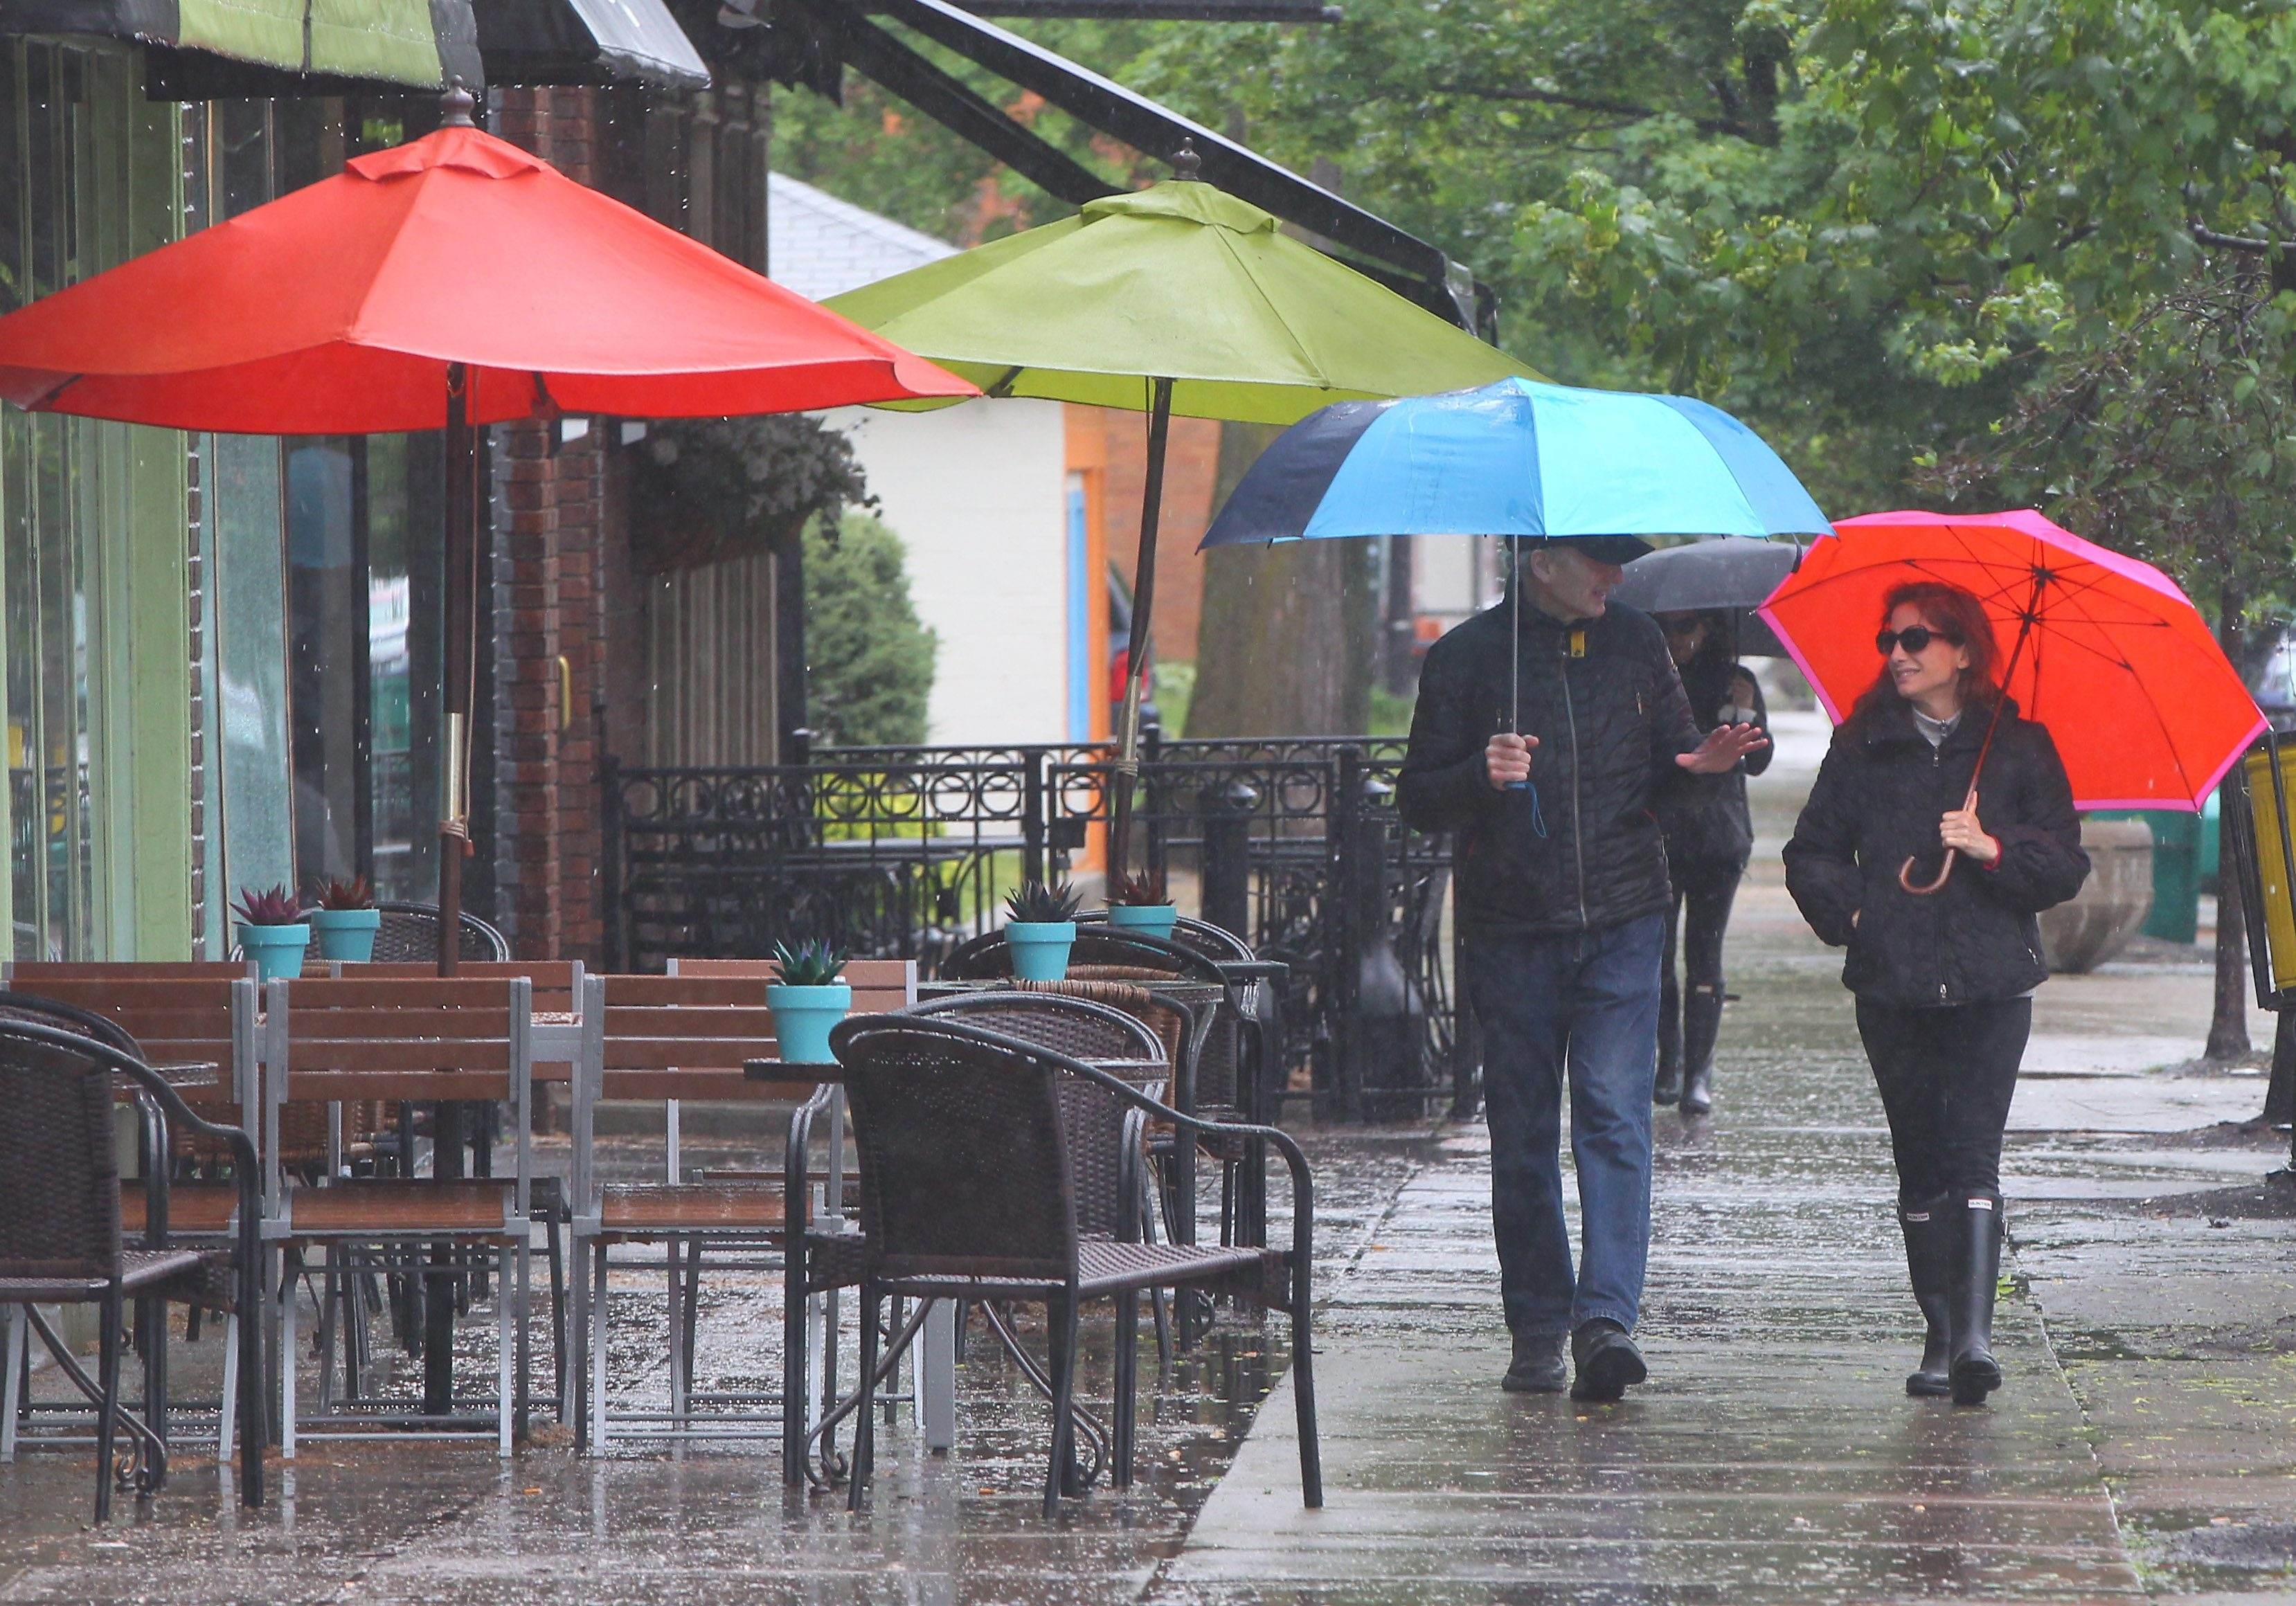 Ted and Lisa Bickford walk through the wind and rain with colorful umbrellas on Elmwood Avenue on Sunday, a day that saw record rainfall.